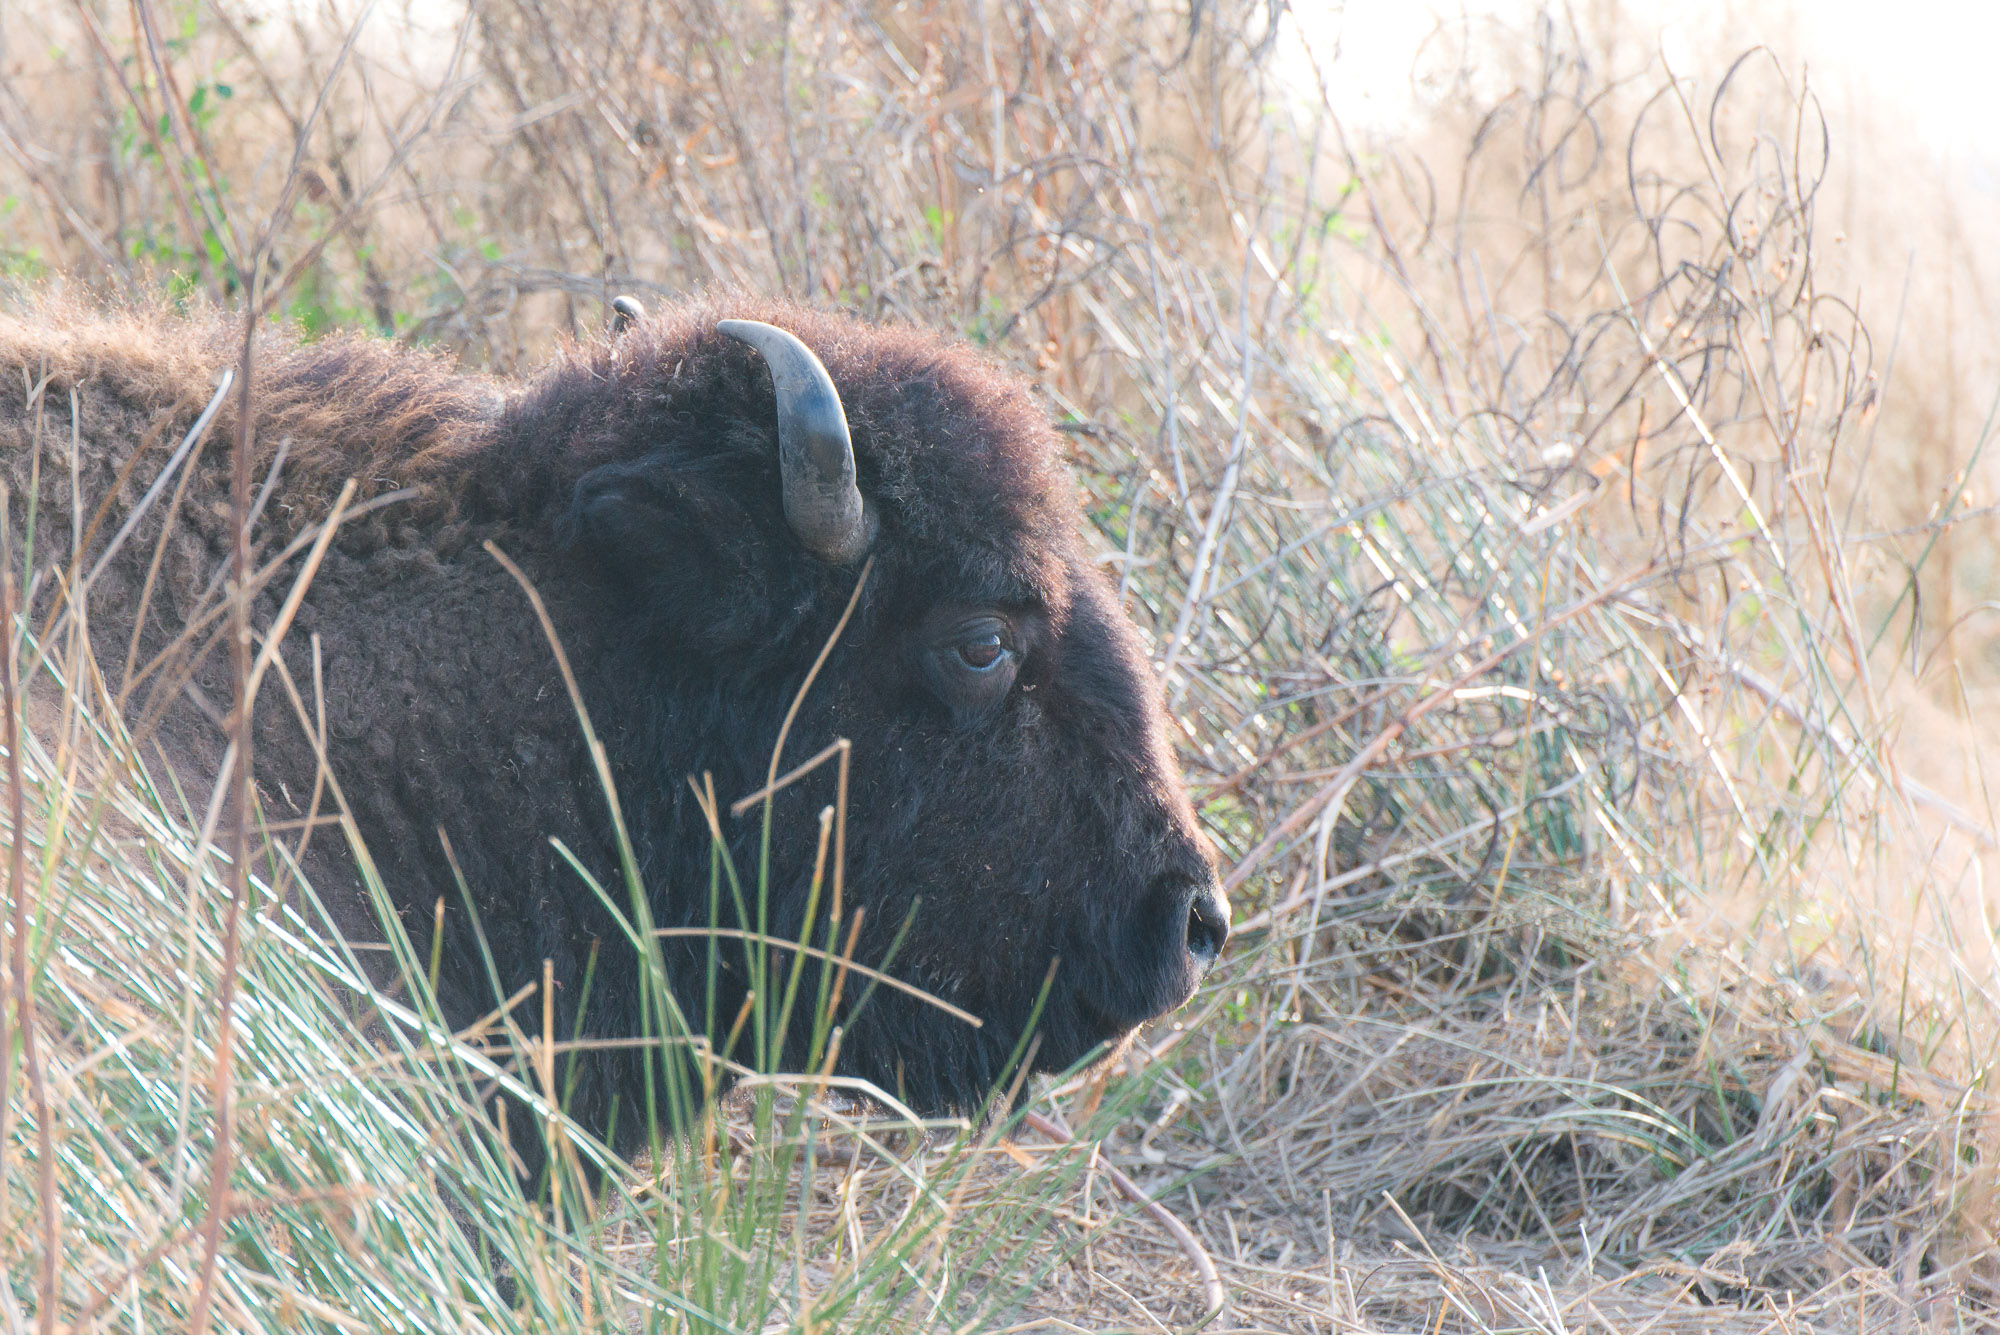 Bison lying in dry grass - Paynes Prairie State Park, Florida